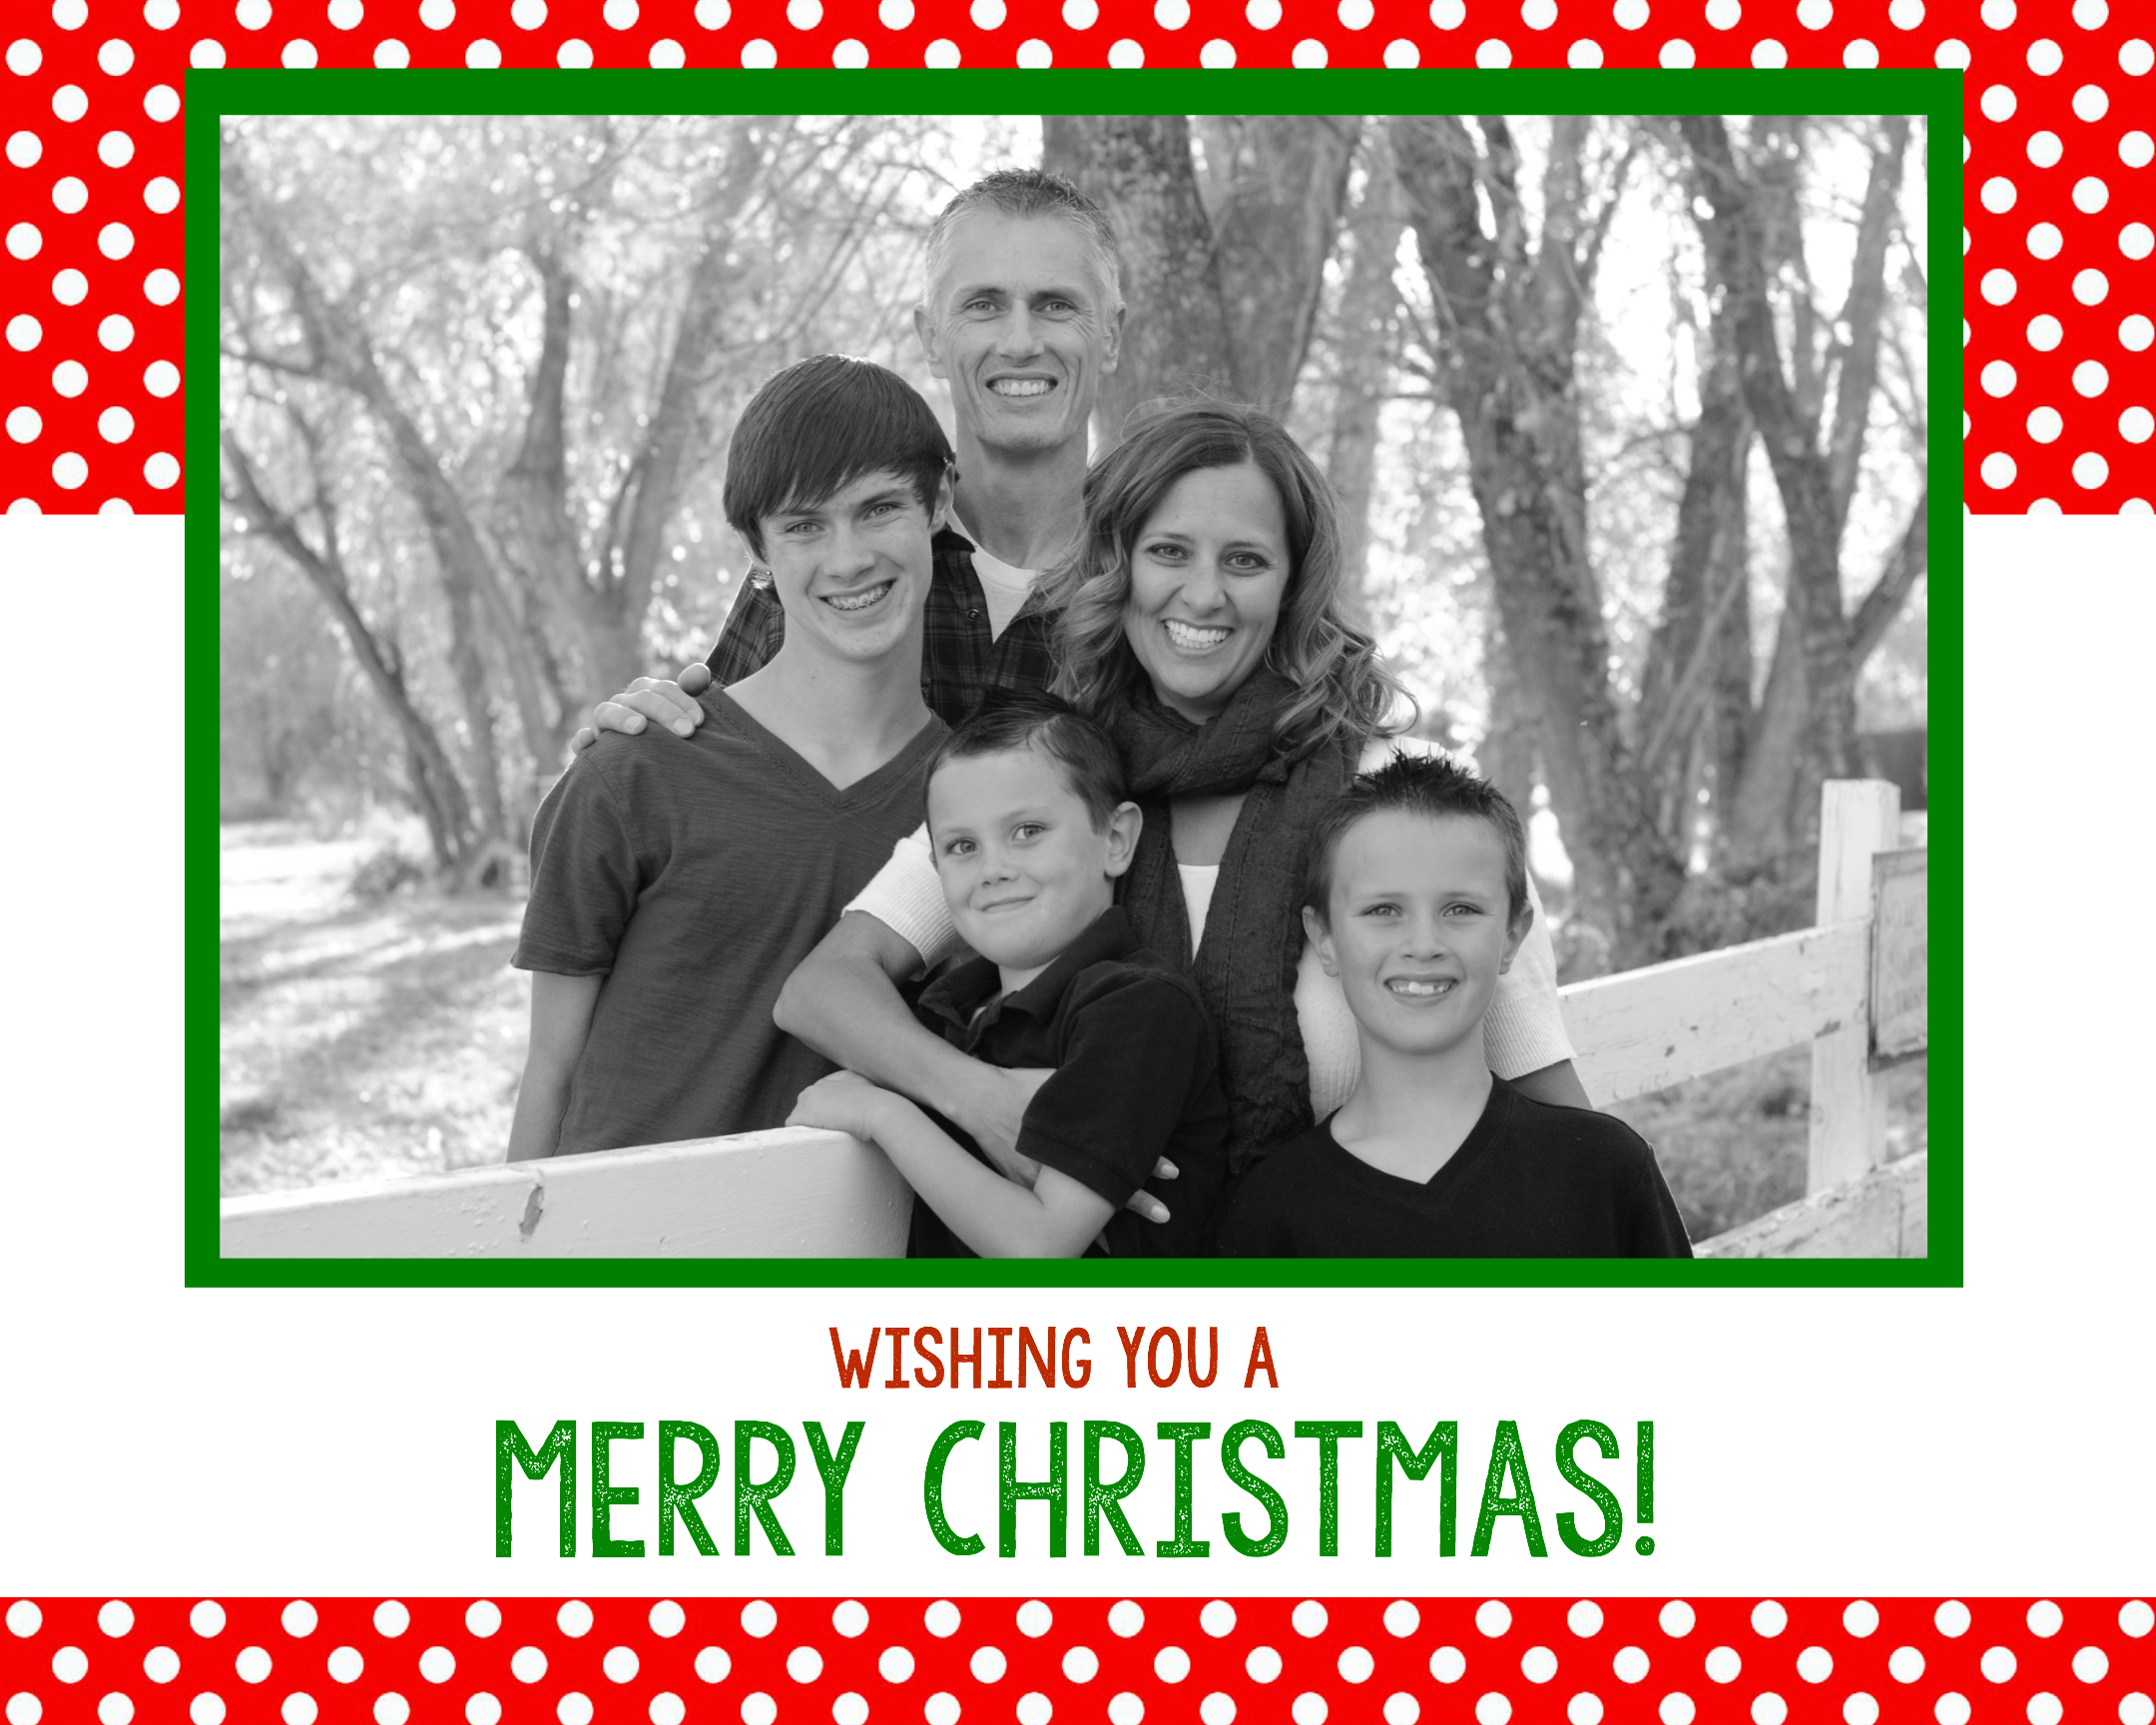 free christmas card template - Family Photo Christmas Cards